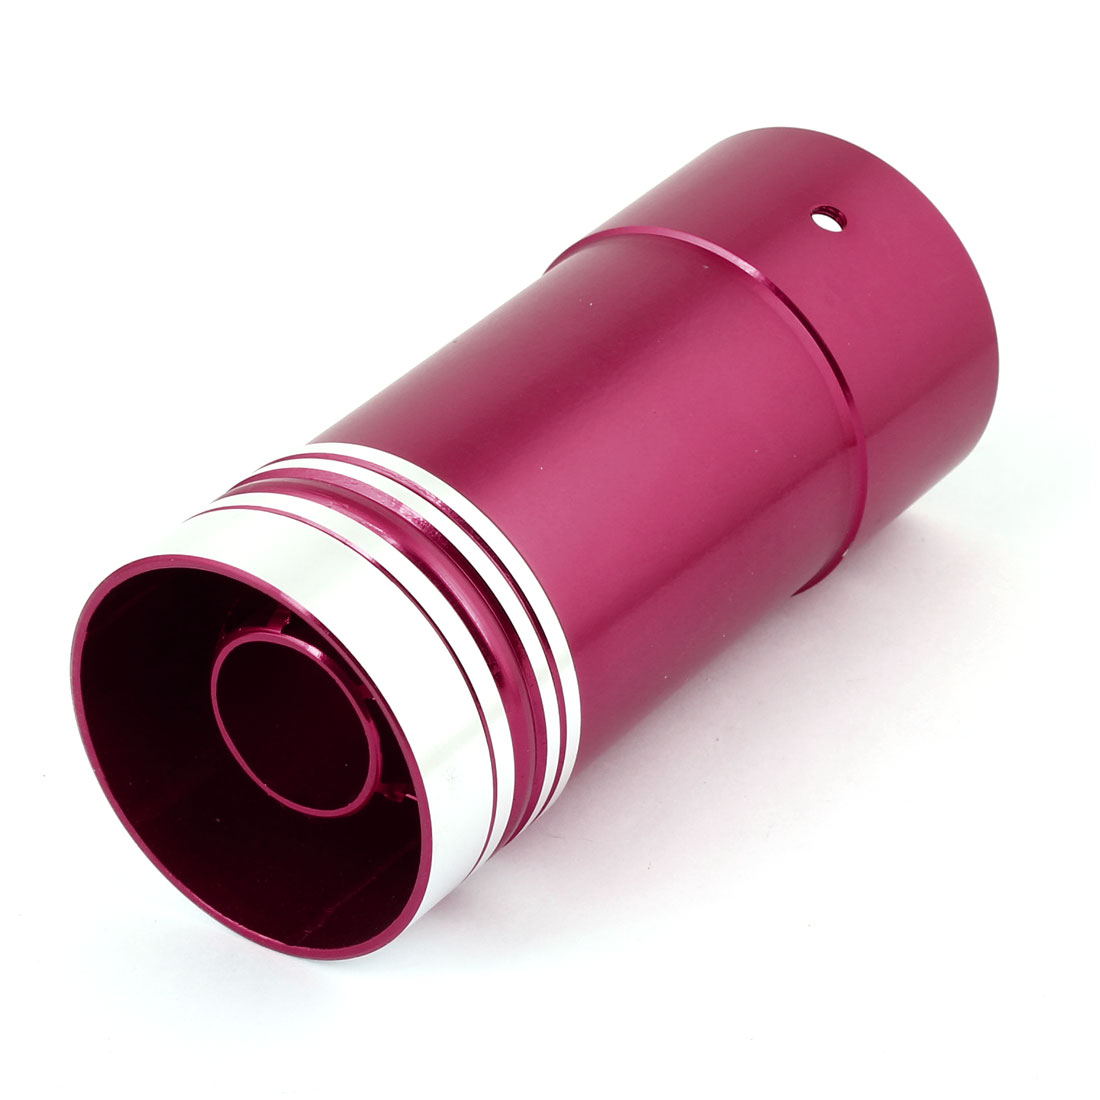 Unique Bargains Car Truck Red Aluminum Exhaust Tailpipe Round Muffler Silencer Tip 145 x 60mm